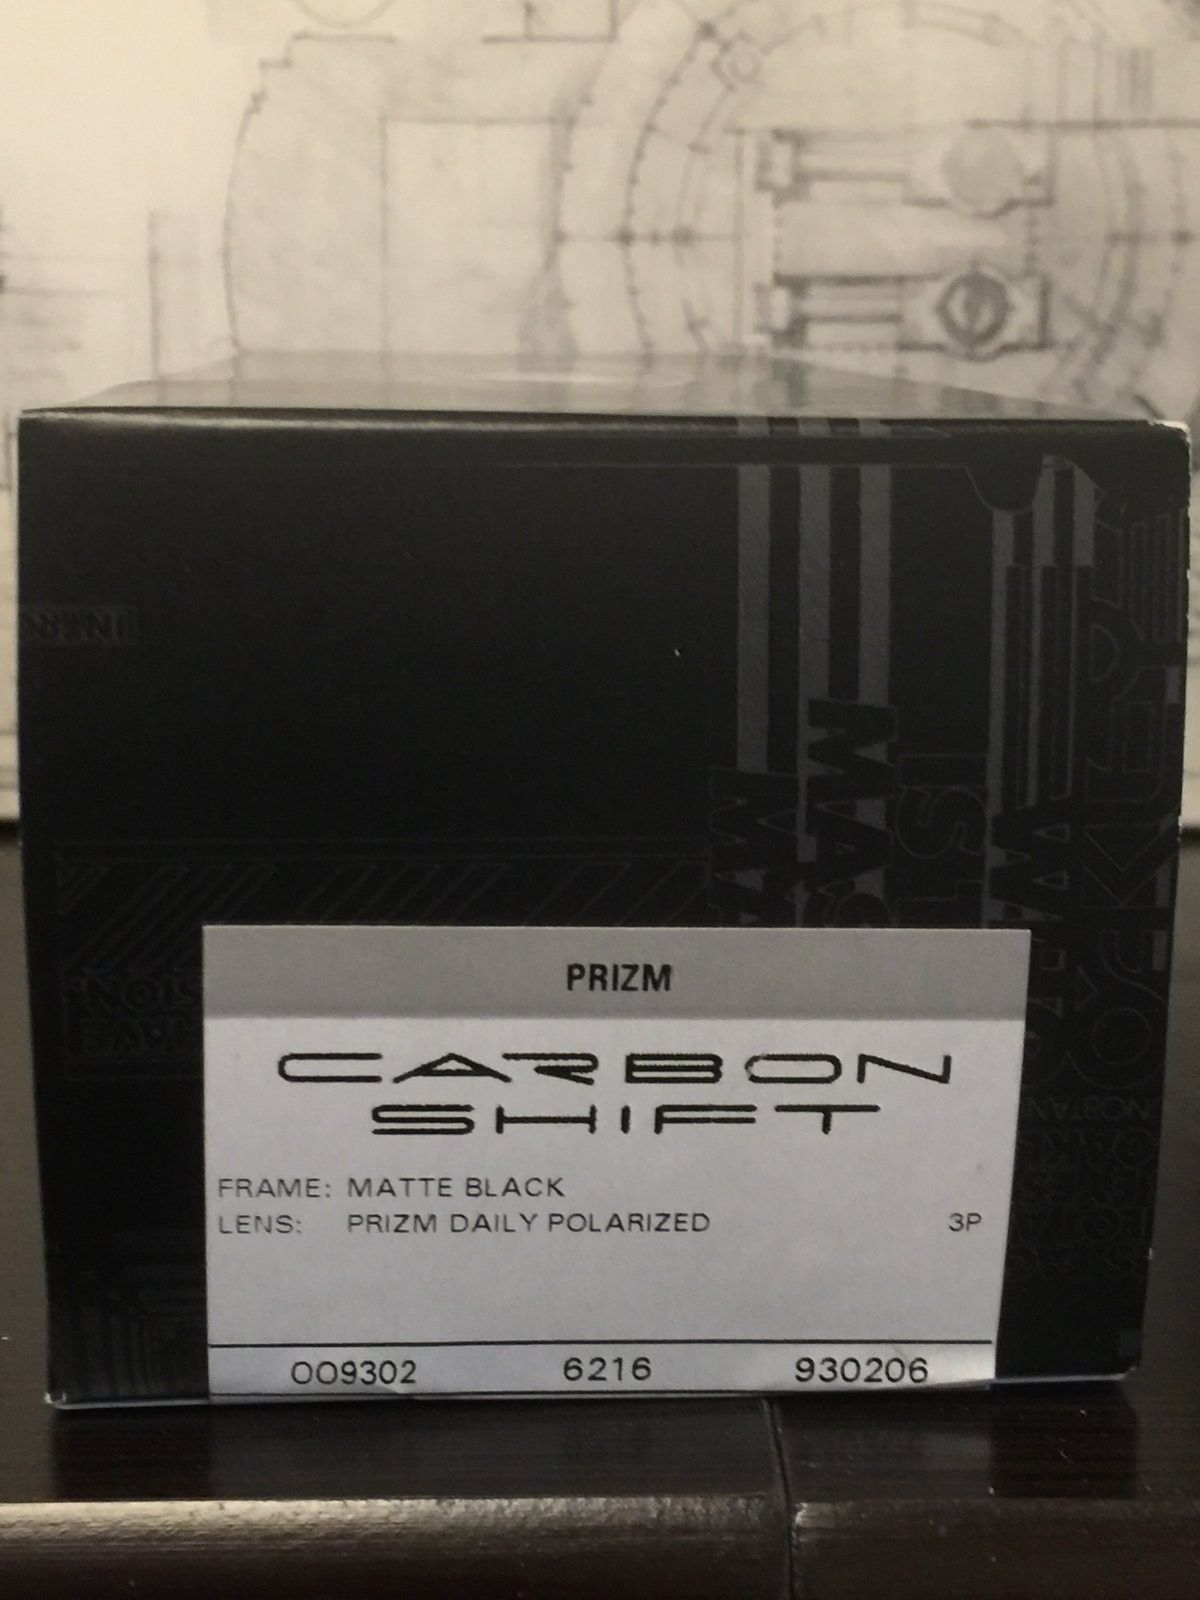 Carbon Shift - prizm daily polarized bnib - image.jpeg